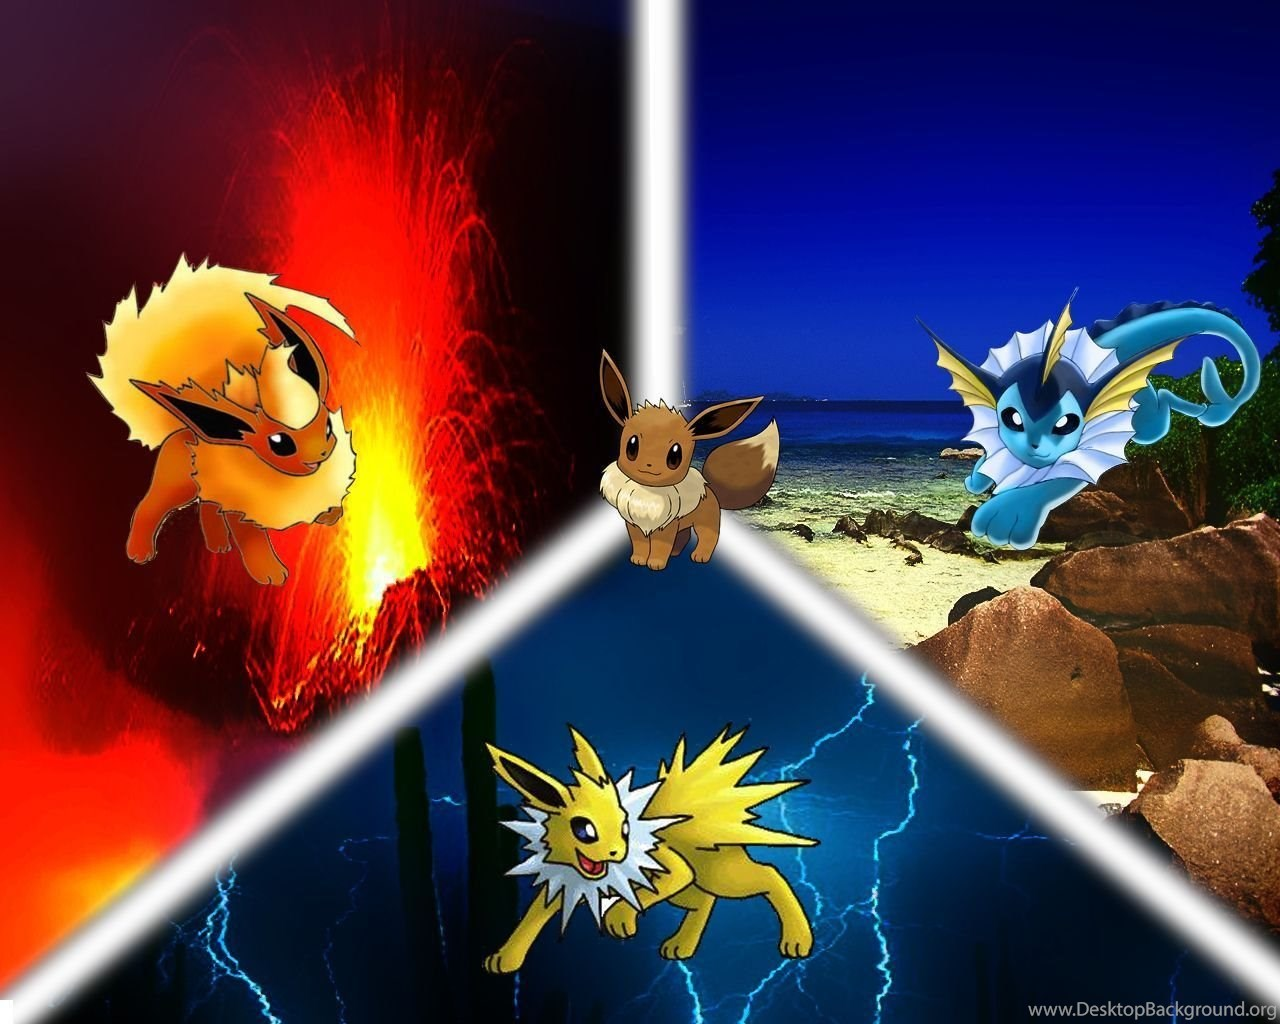 Cool Wallpaper Images Photos Download : Cool Pokemon Wallpapers